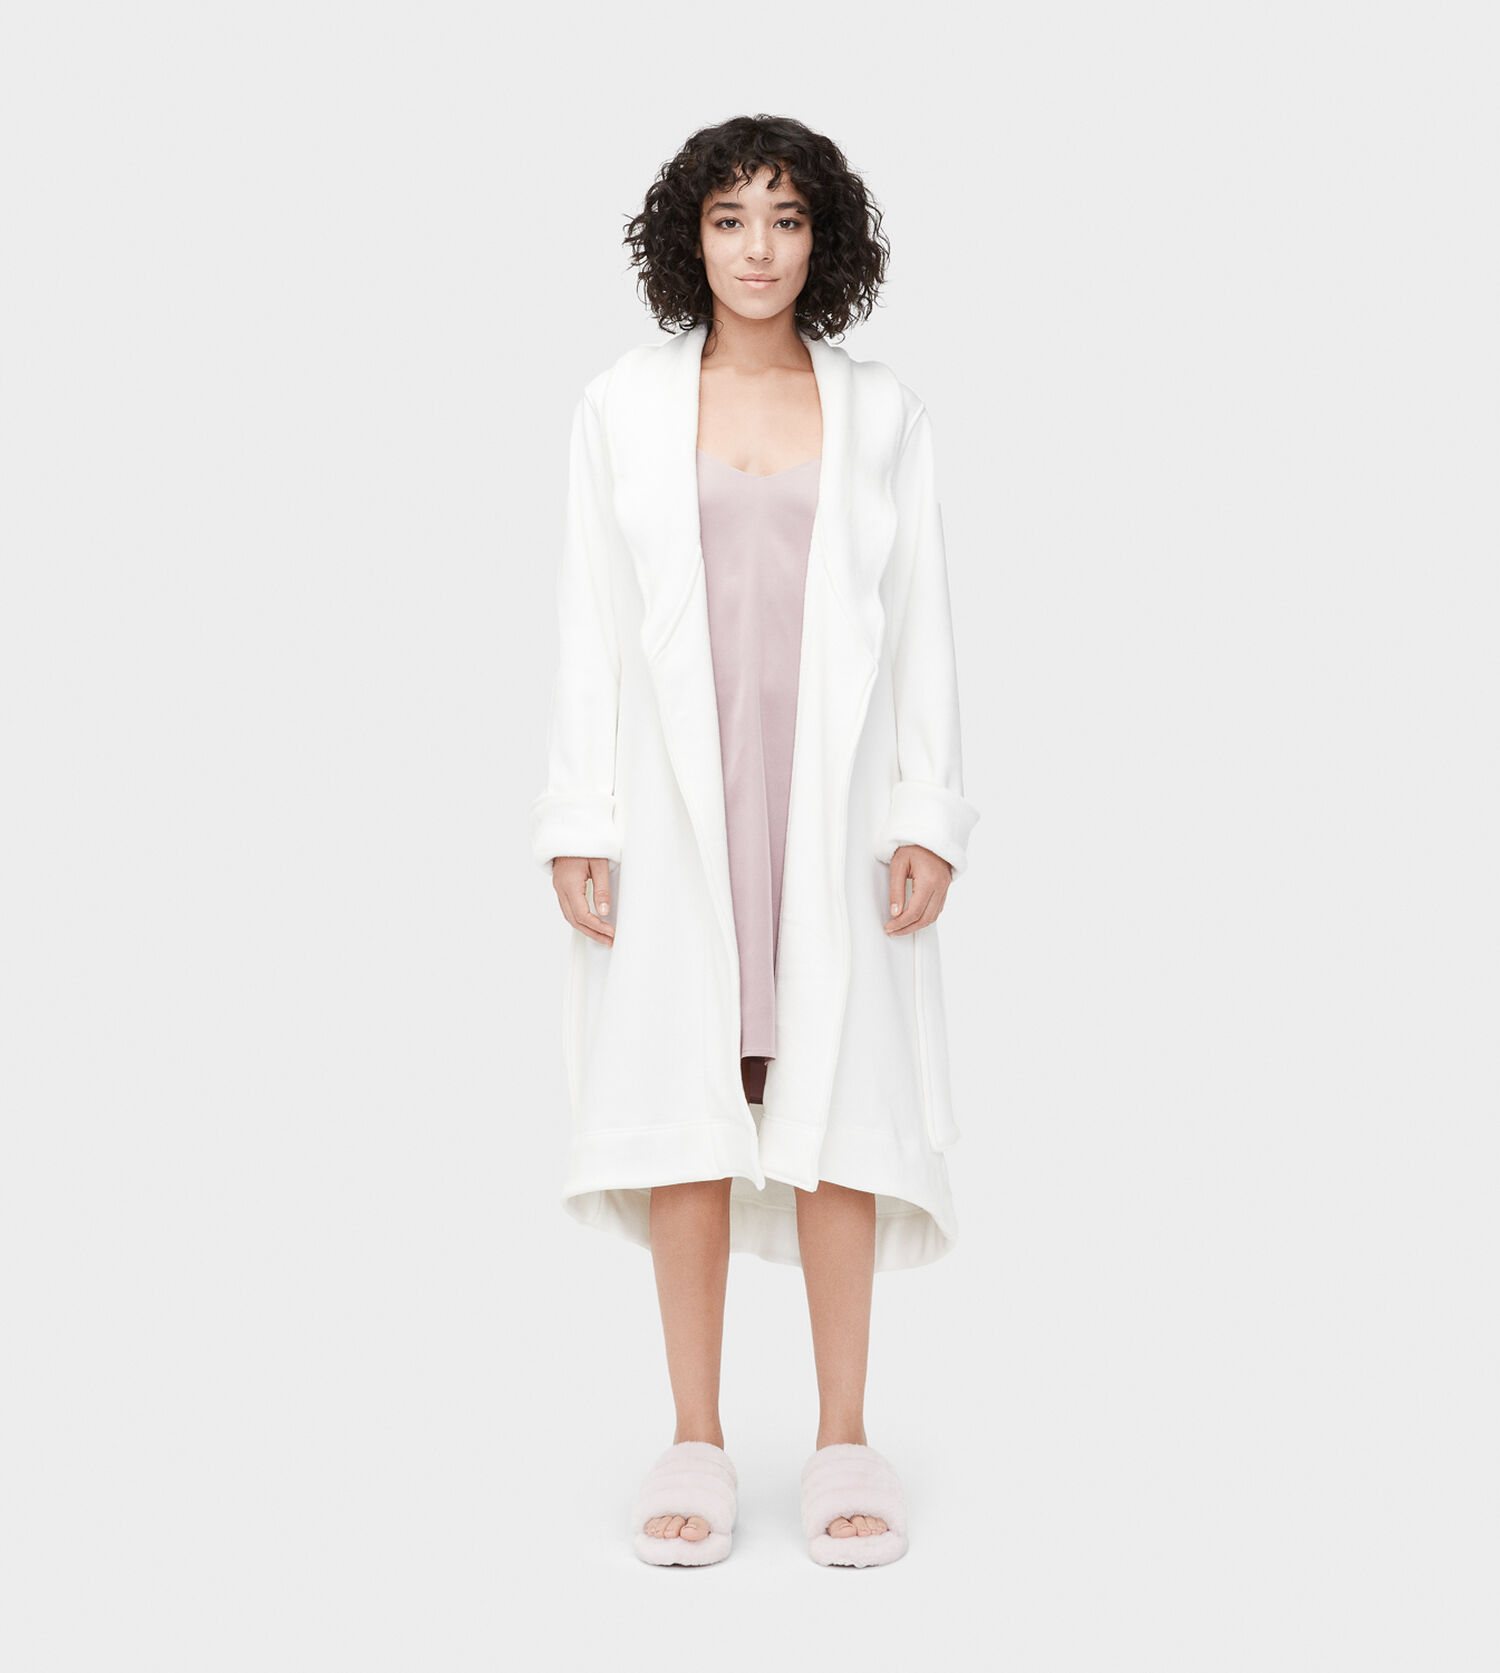 Zoom Duffield II Robe - Image 1 of 5 5529d24b7